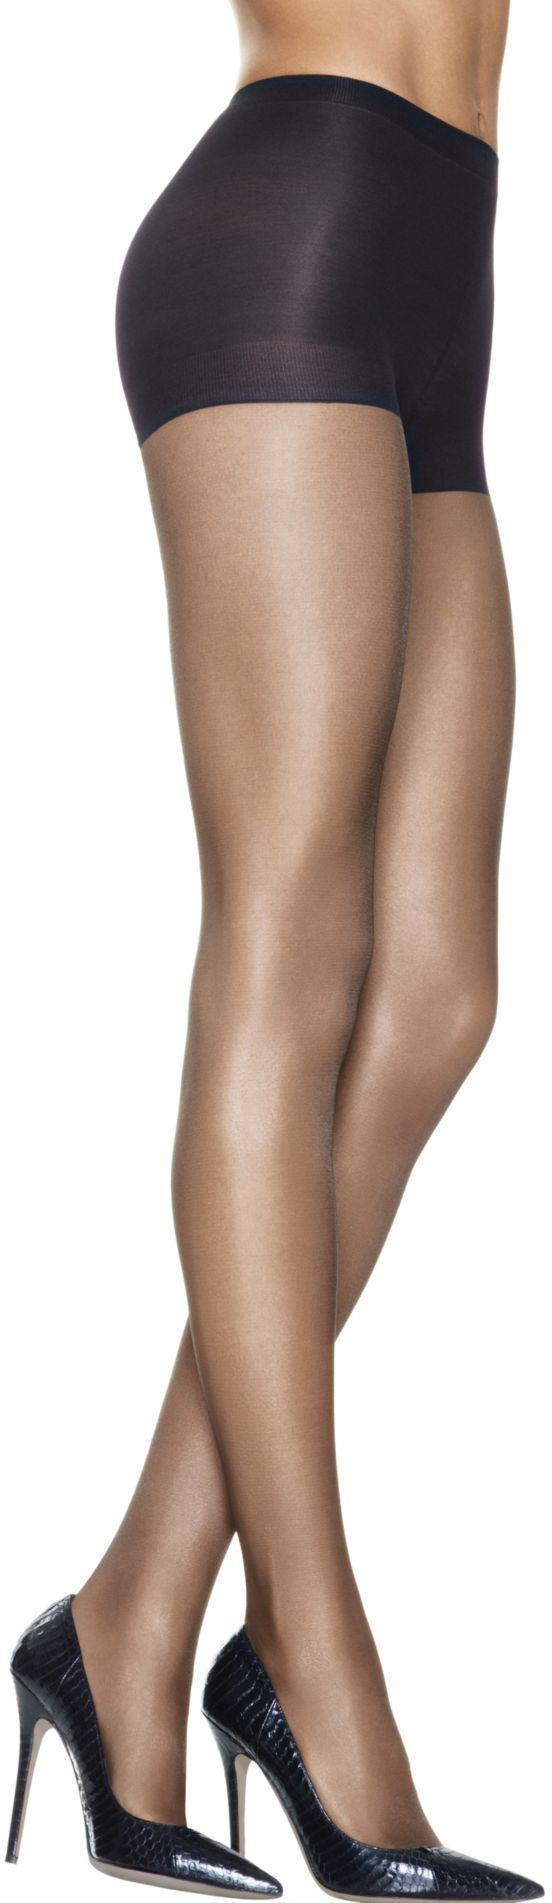 Control Top Hosiery One Hanes Place